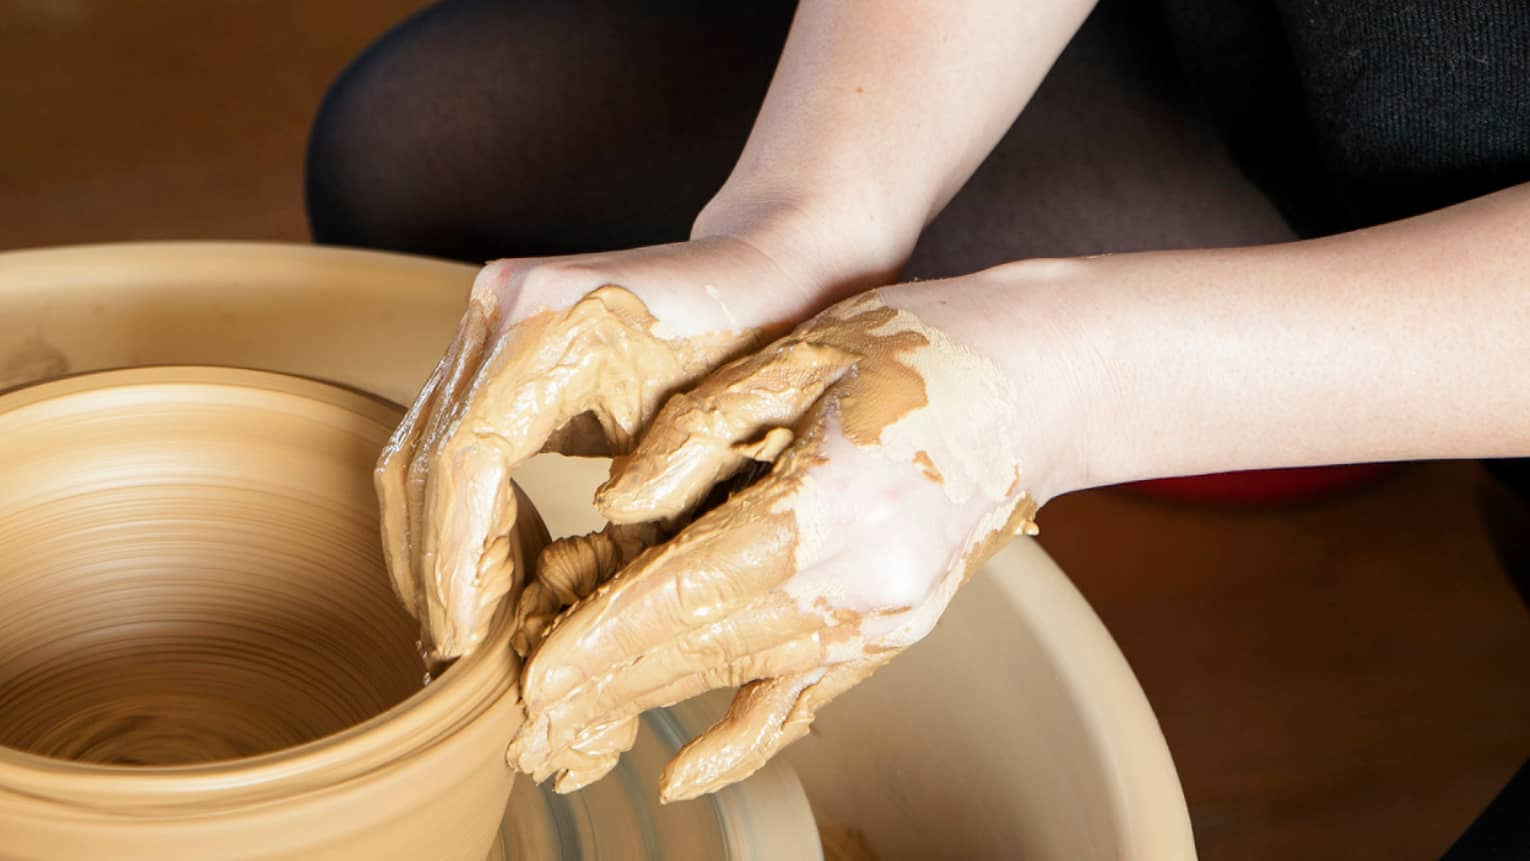 Close-up of hands covered in clay making pottery